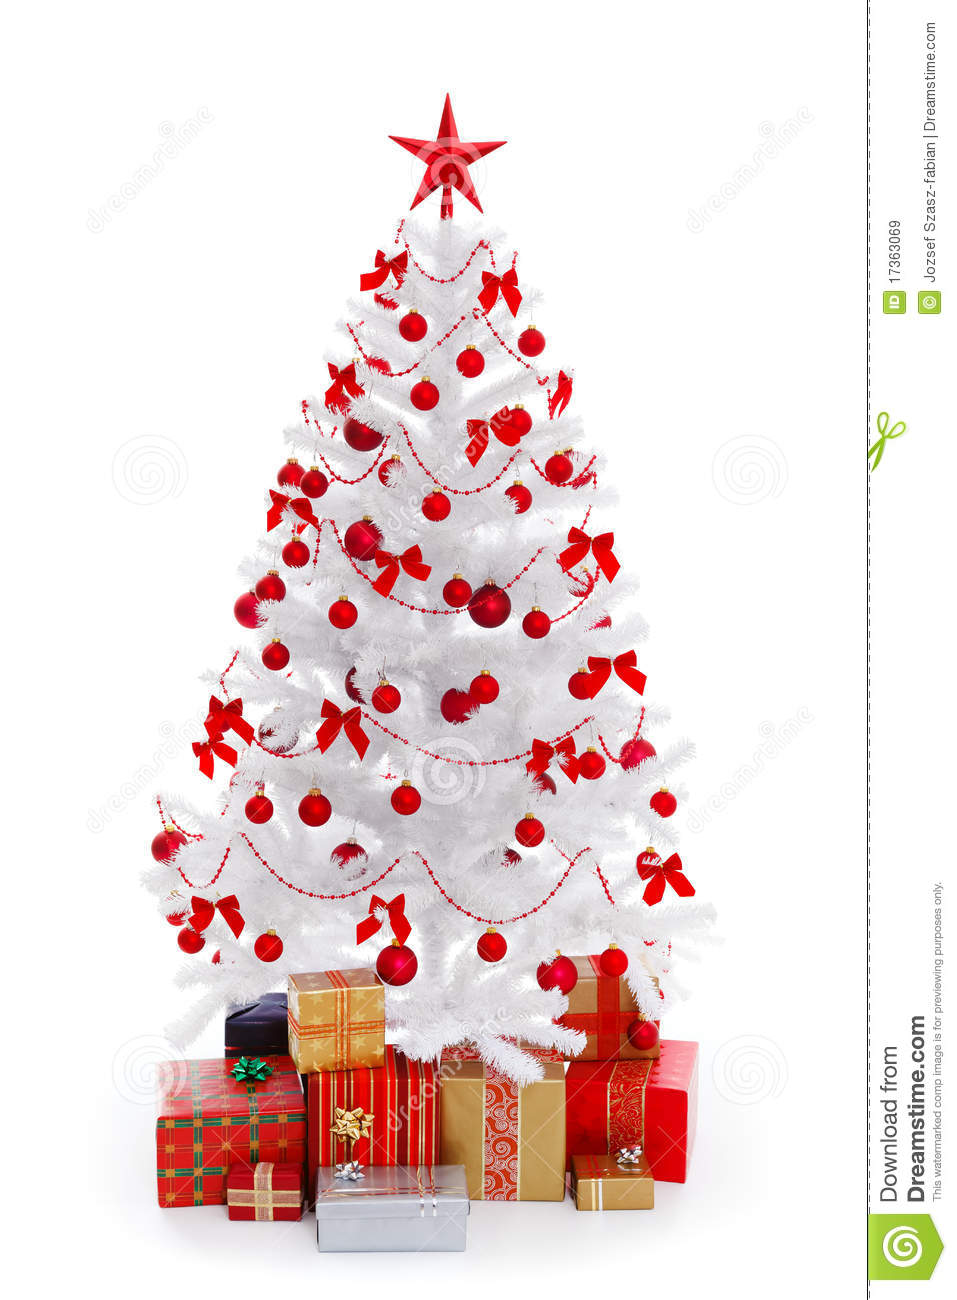 White Christmas Tree With Gifts And Red Decoration Stock Image ...